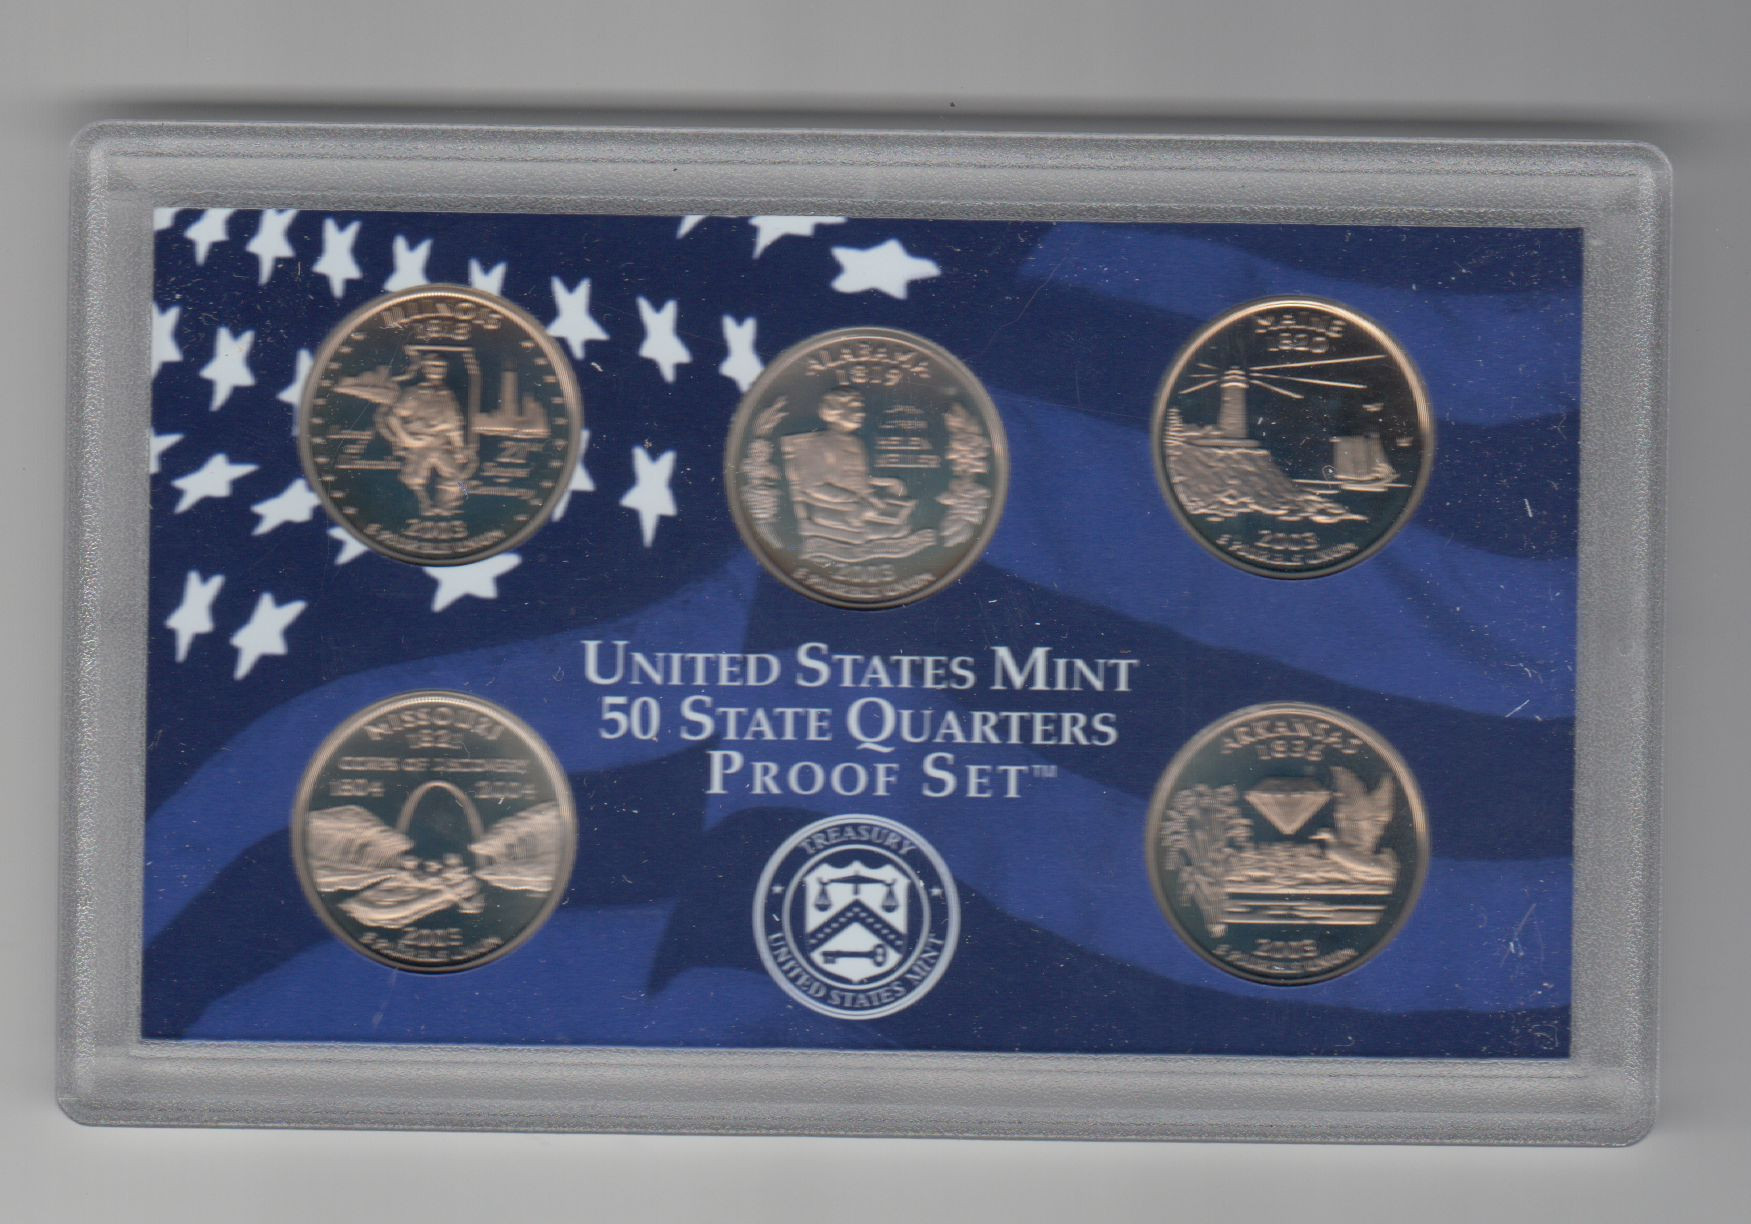 Elegant Value Of 5 Coins 50 State Quarters Proof Set In Box with State Quarter Set Value Of New 2007 P & D United States Mint Uncirculated Coin Set State Quarter Set Value